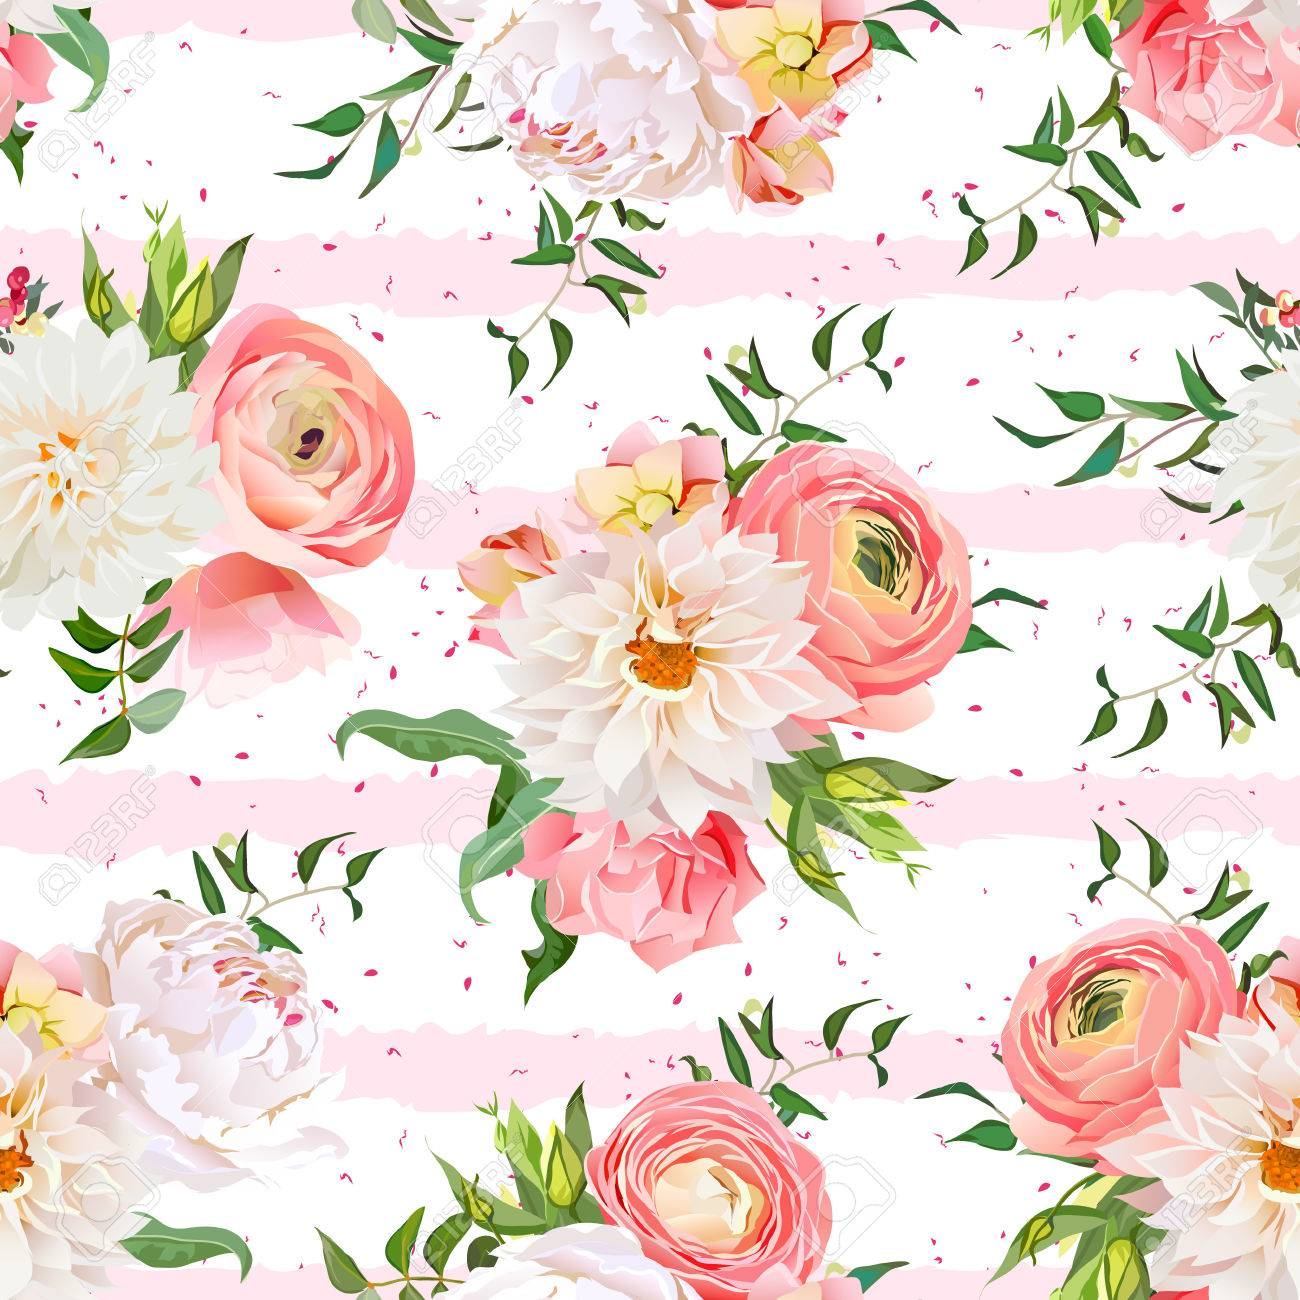 Dahlia, Ranunculus, Rose And Peony Seamless Pattern. Romantic Garden Print  With Pink Striped